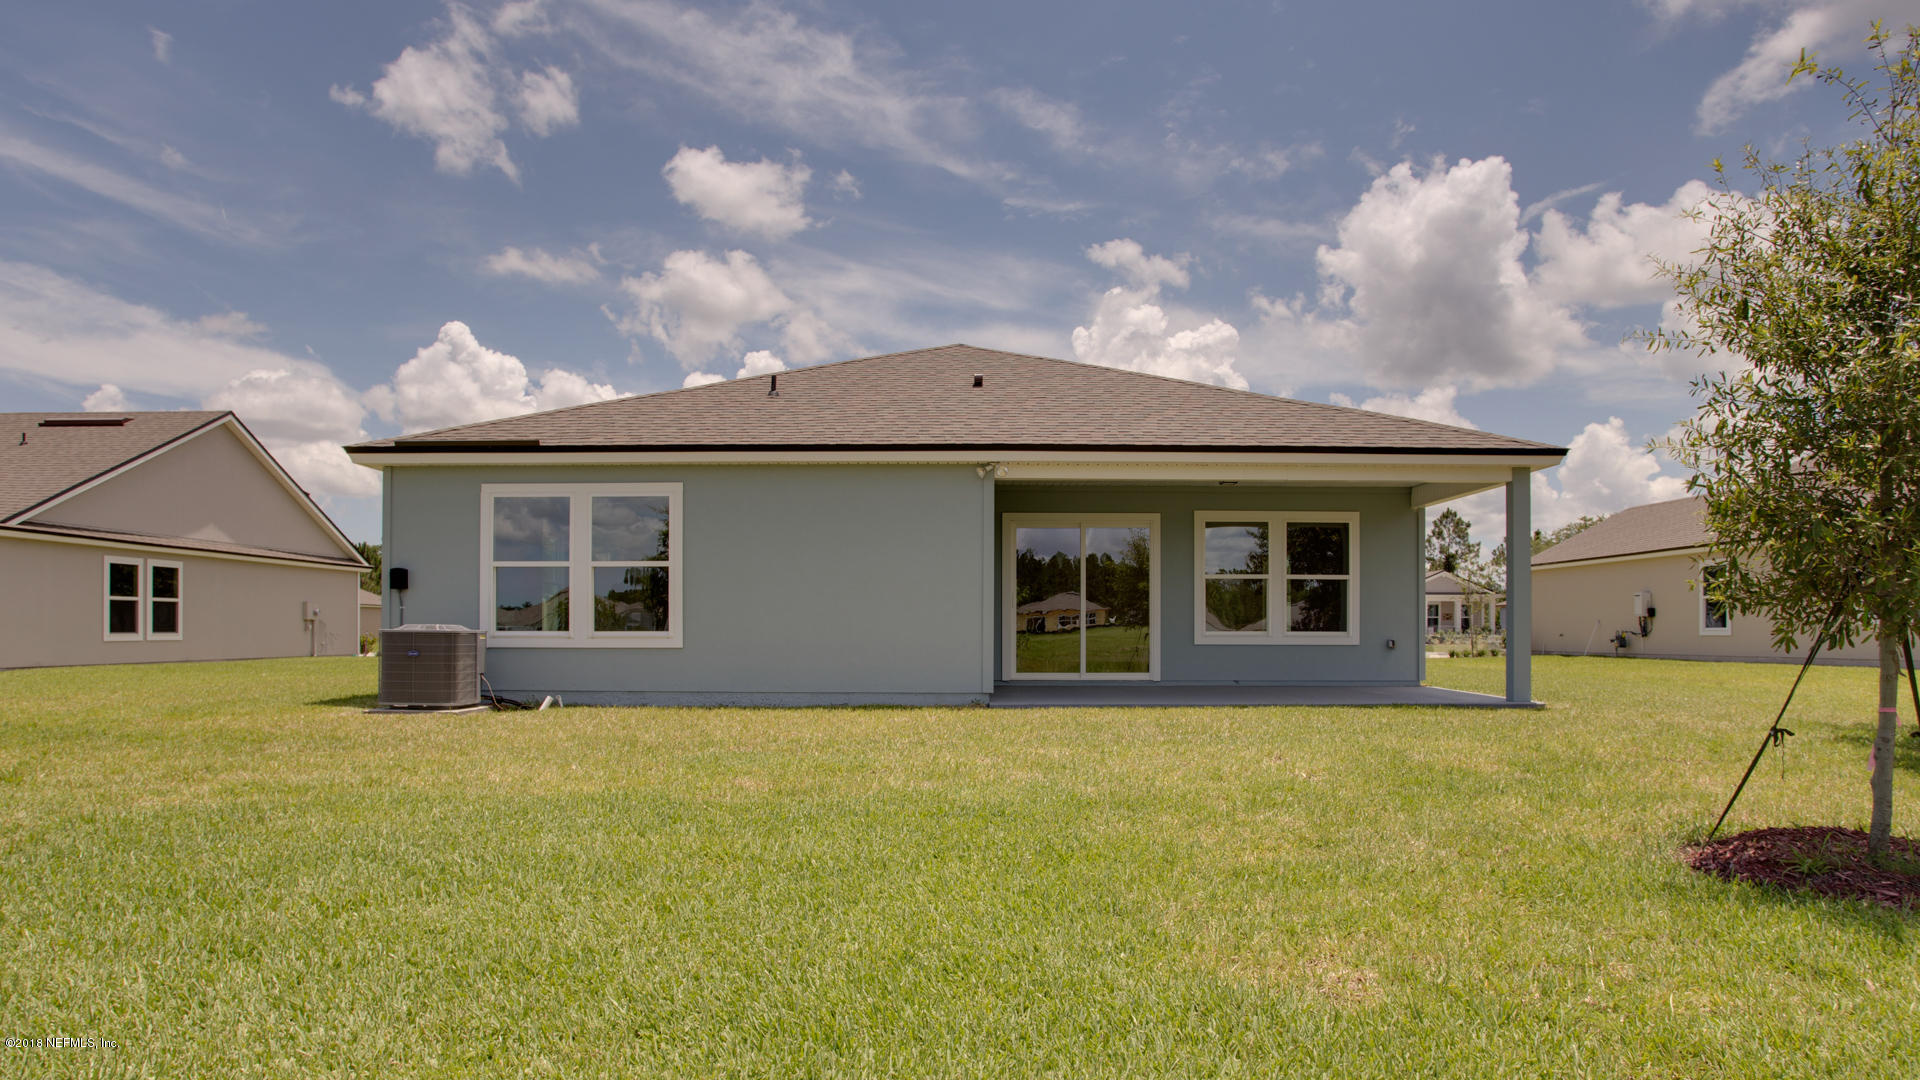 216 GRAND RESERVE, BUNNELL, FLORIDA 32110, 3 Bedrooms Bedrooms, ,2 BathroomsBathrooms,Residential - single family,For sale,GRAND RESERVE,901067